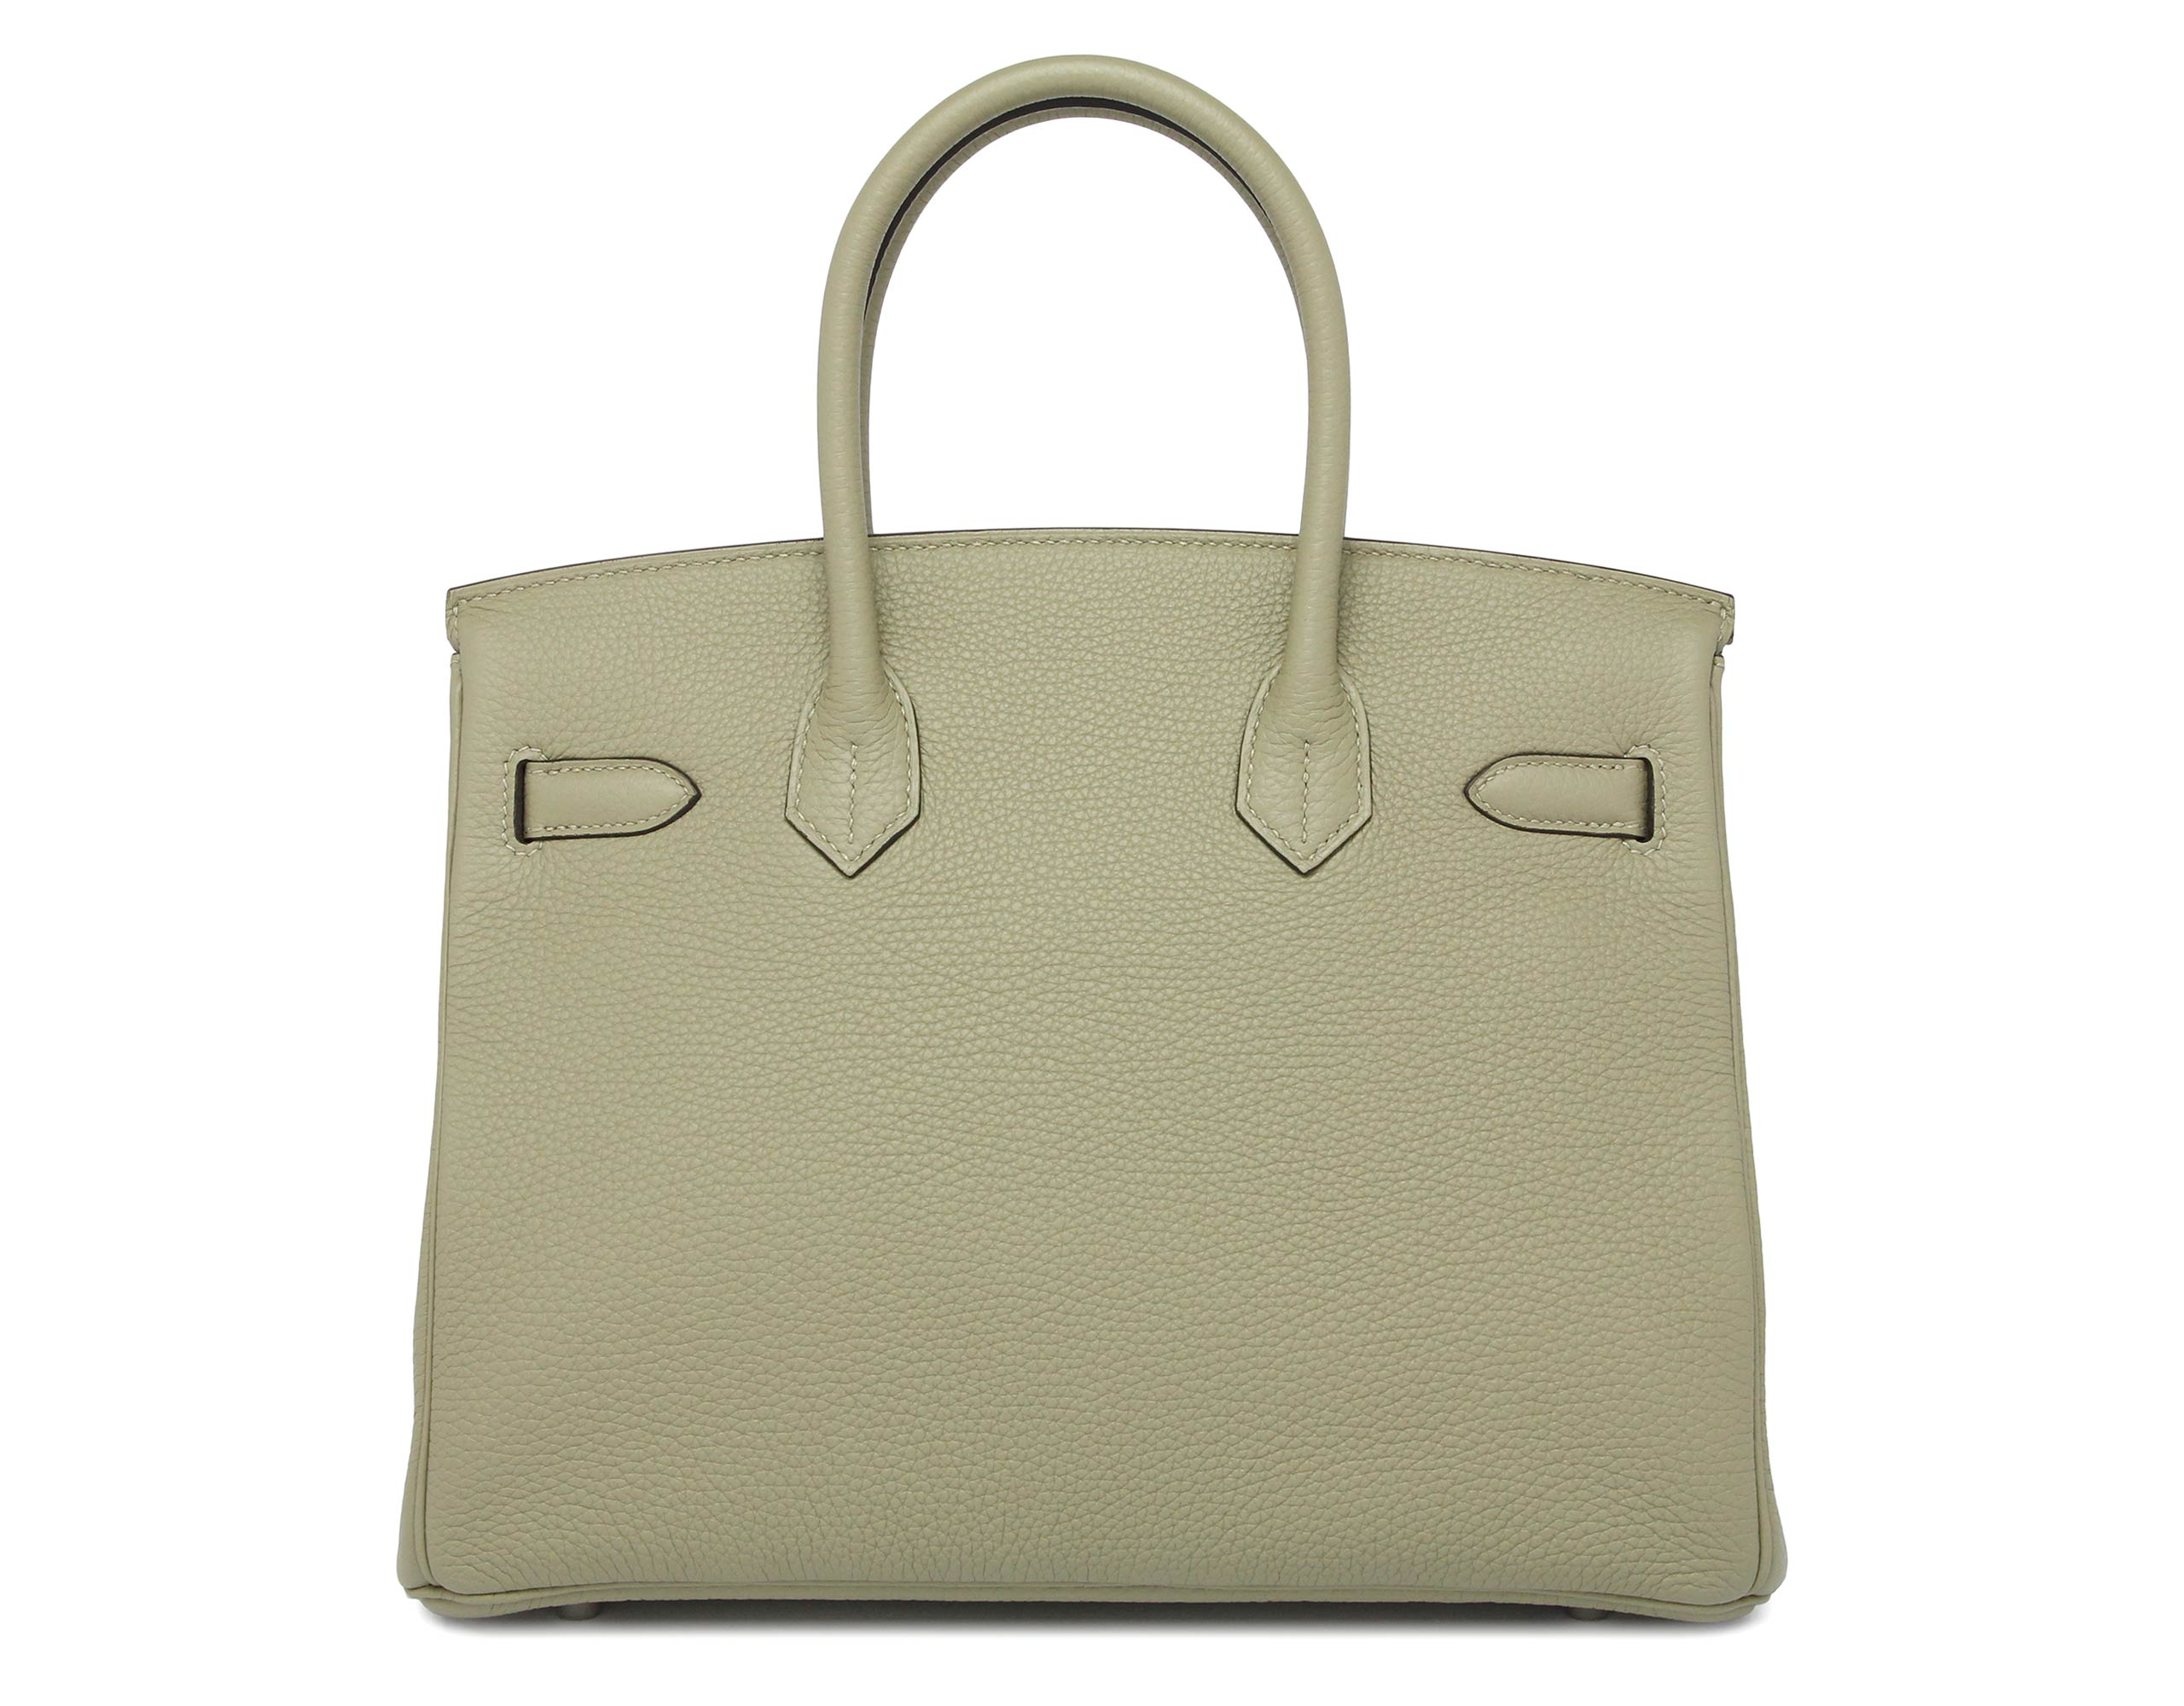 hermes paris purse - Hermes Birkin Bags For Sale | Bags of Luxury, London